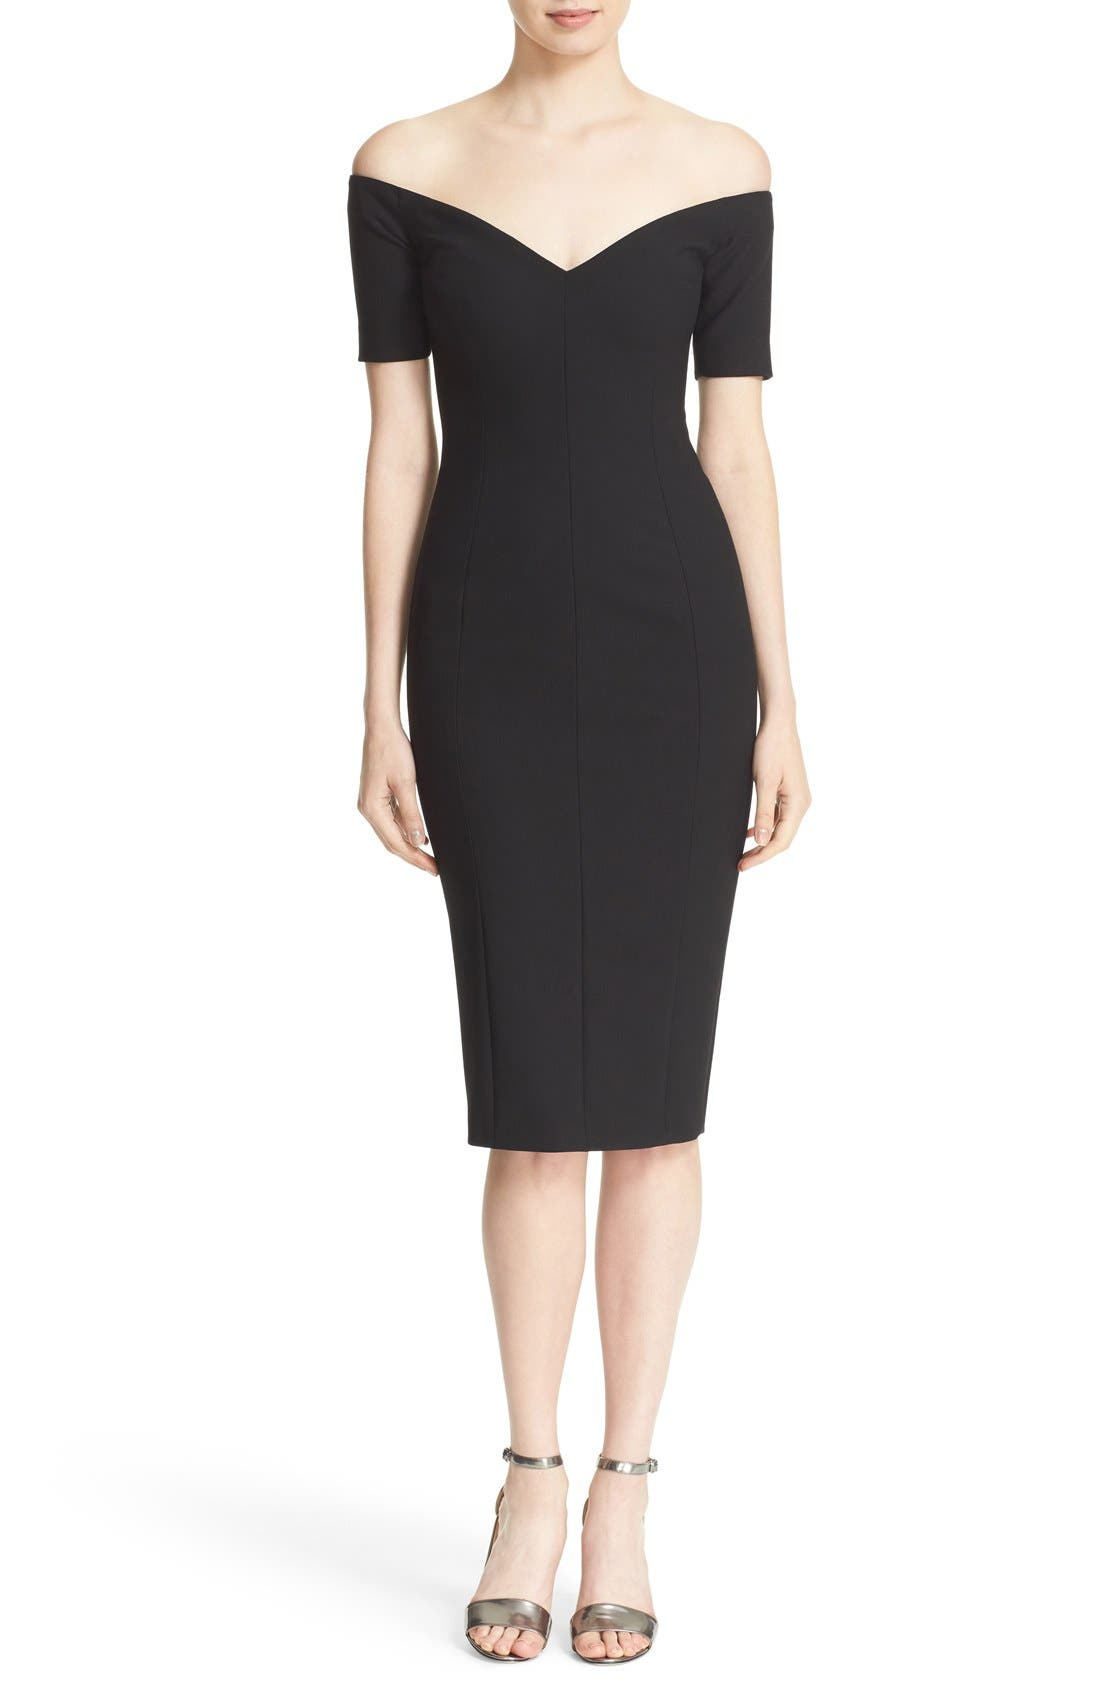 Alternate Image 1 Selected - Cinq à Sept 'Jolie' Off the Shoulder Sheath Dress